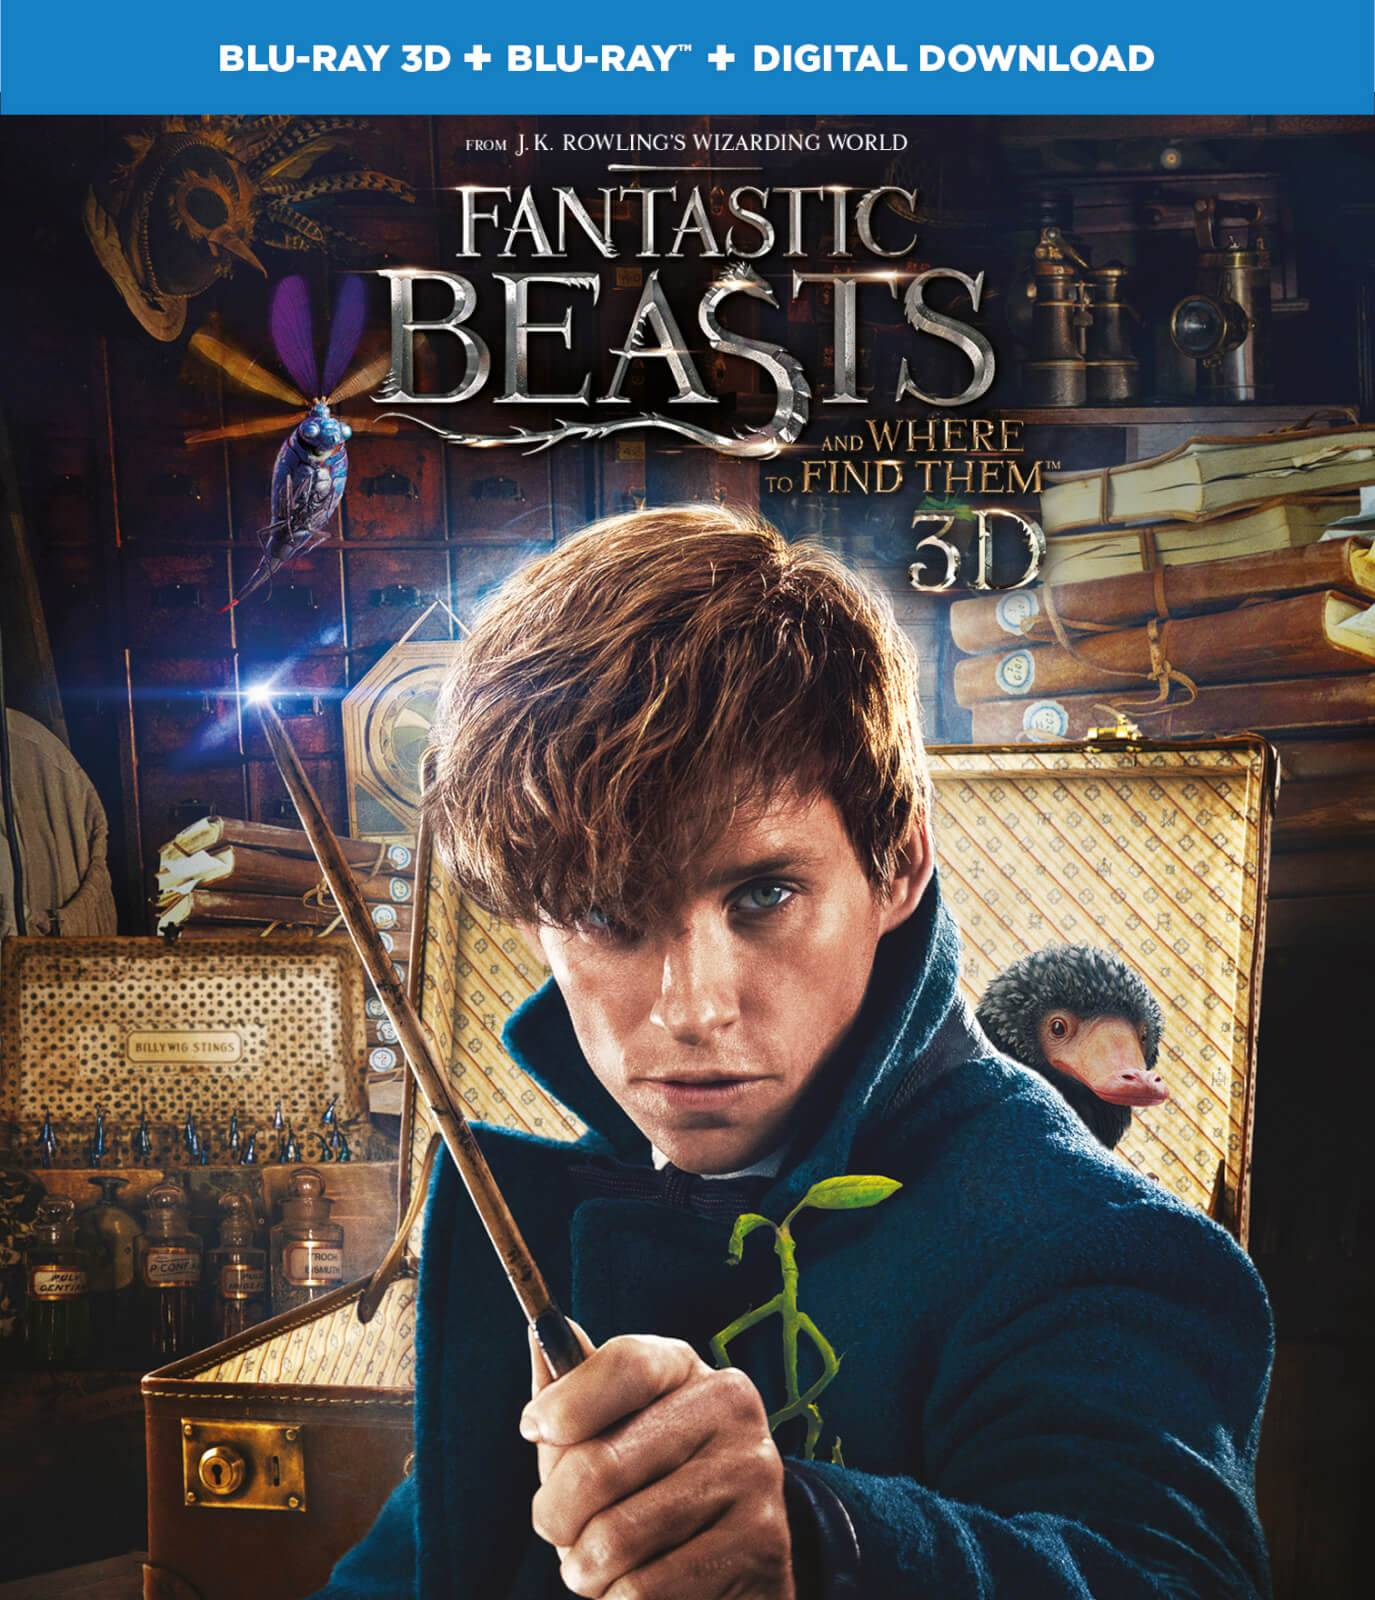 Warner Home Video Fantastic Beasts and Where To Find Them 3D (Includes 2D Version)